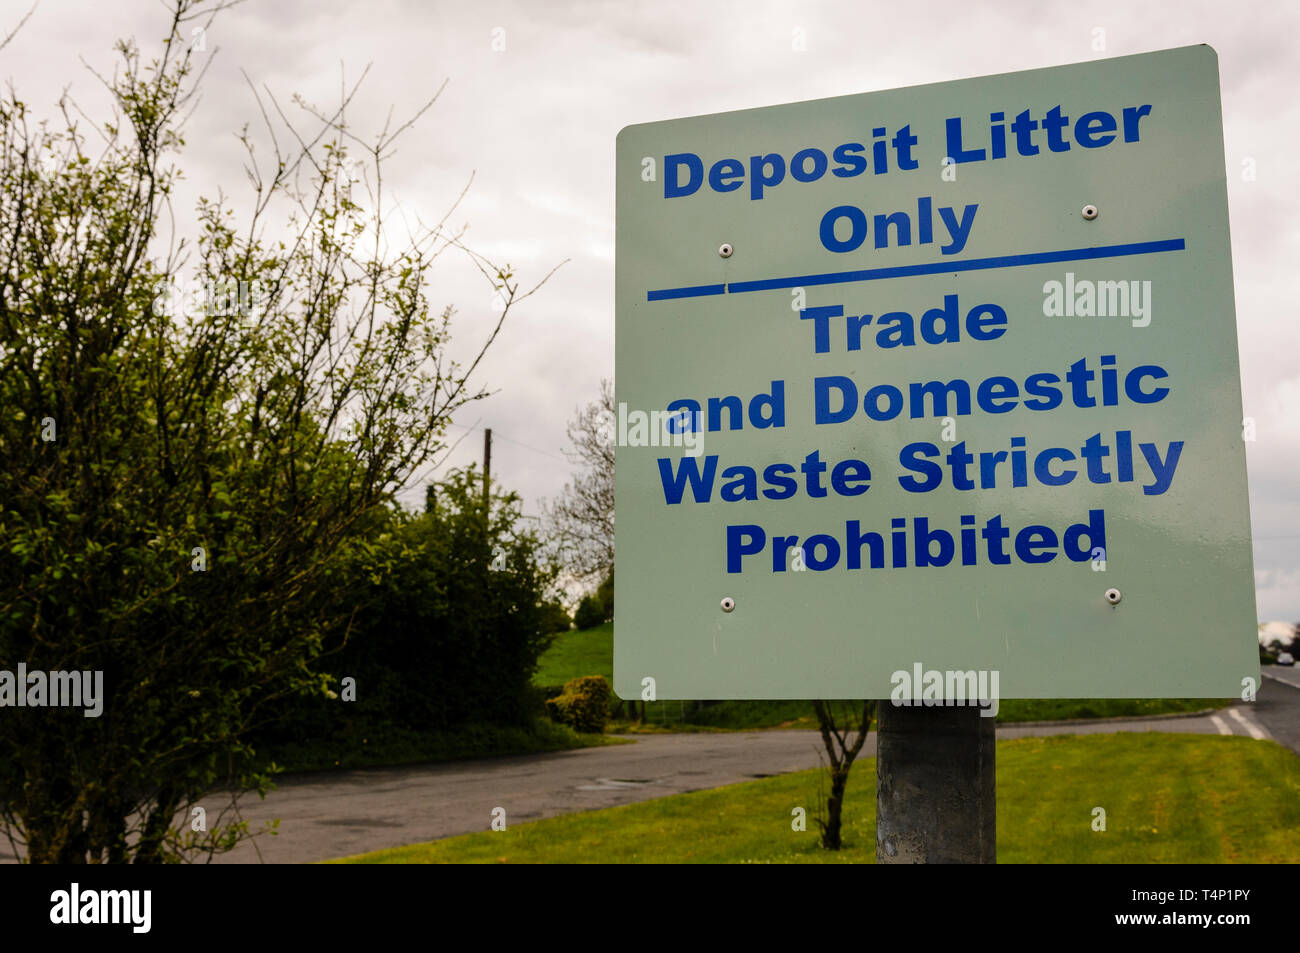 Sign at a layby warning visitors to deposit litter only. Trade and domestic waste strictly prohibited - Stock Image